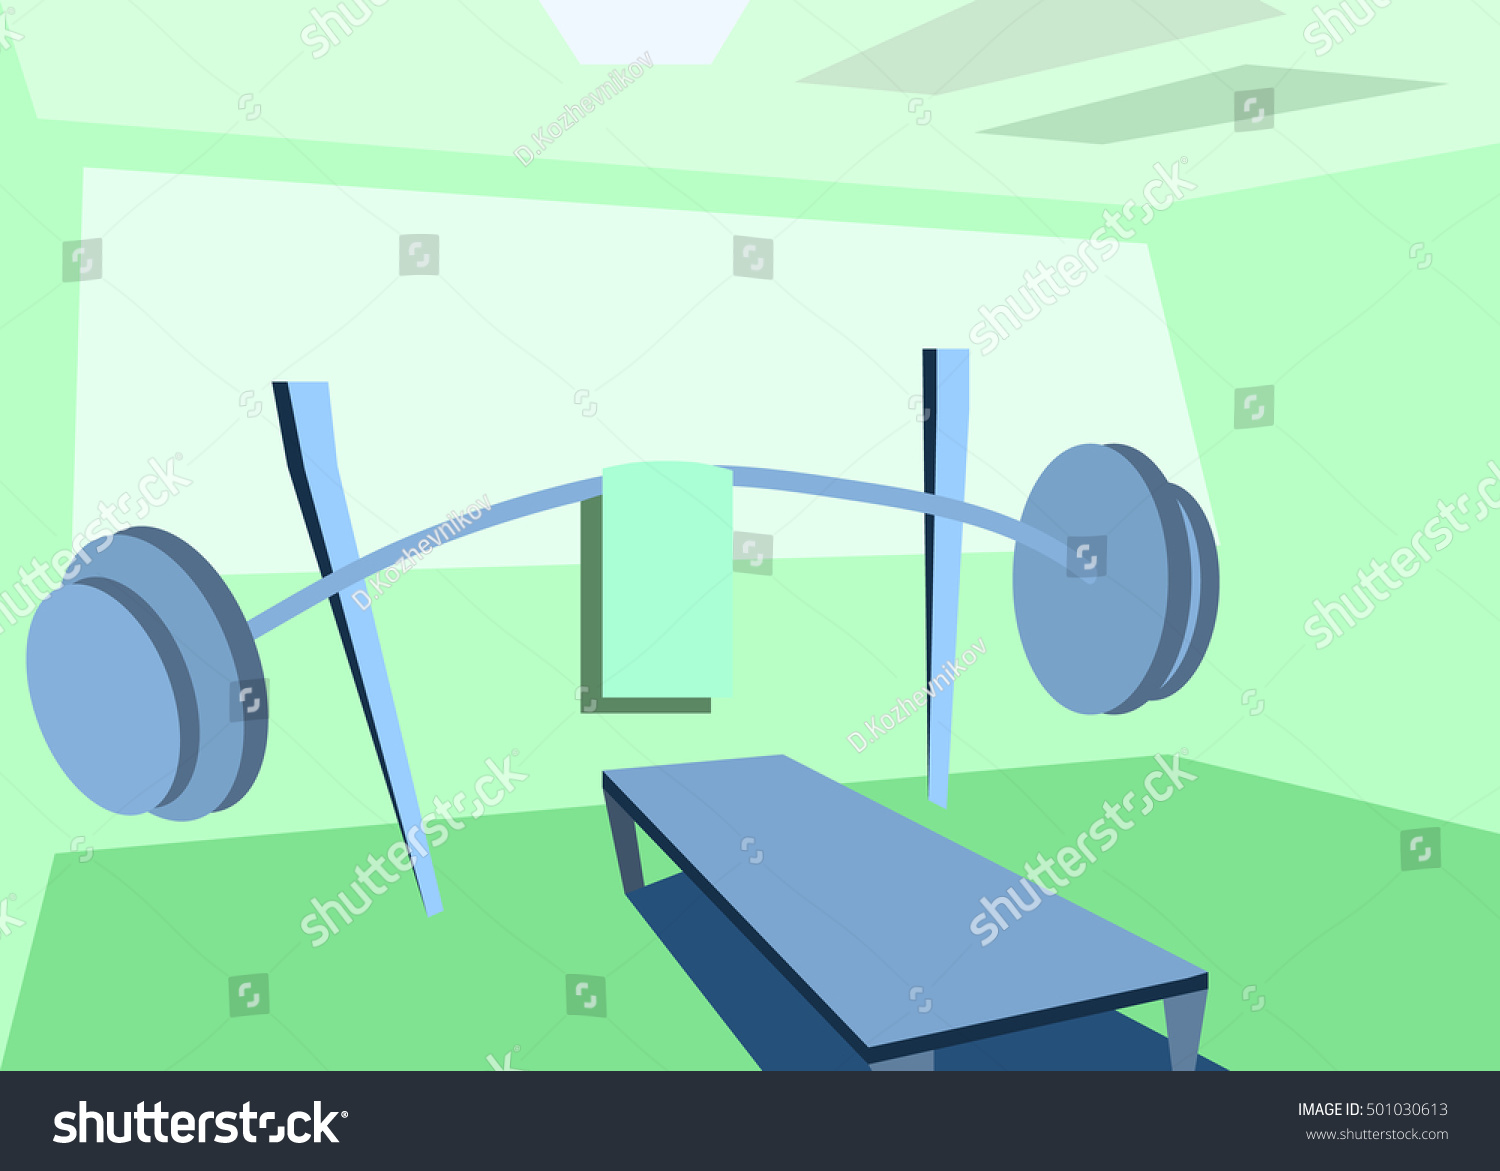 Gym room interior made flat design stock vector royalty free